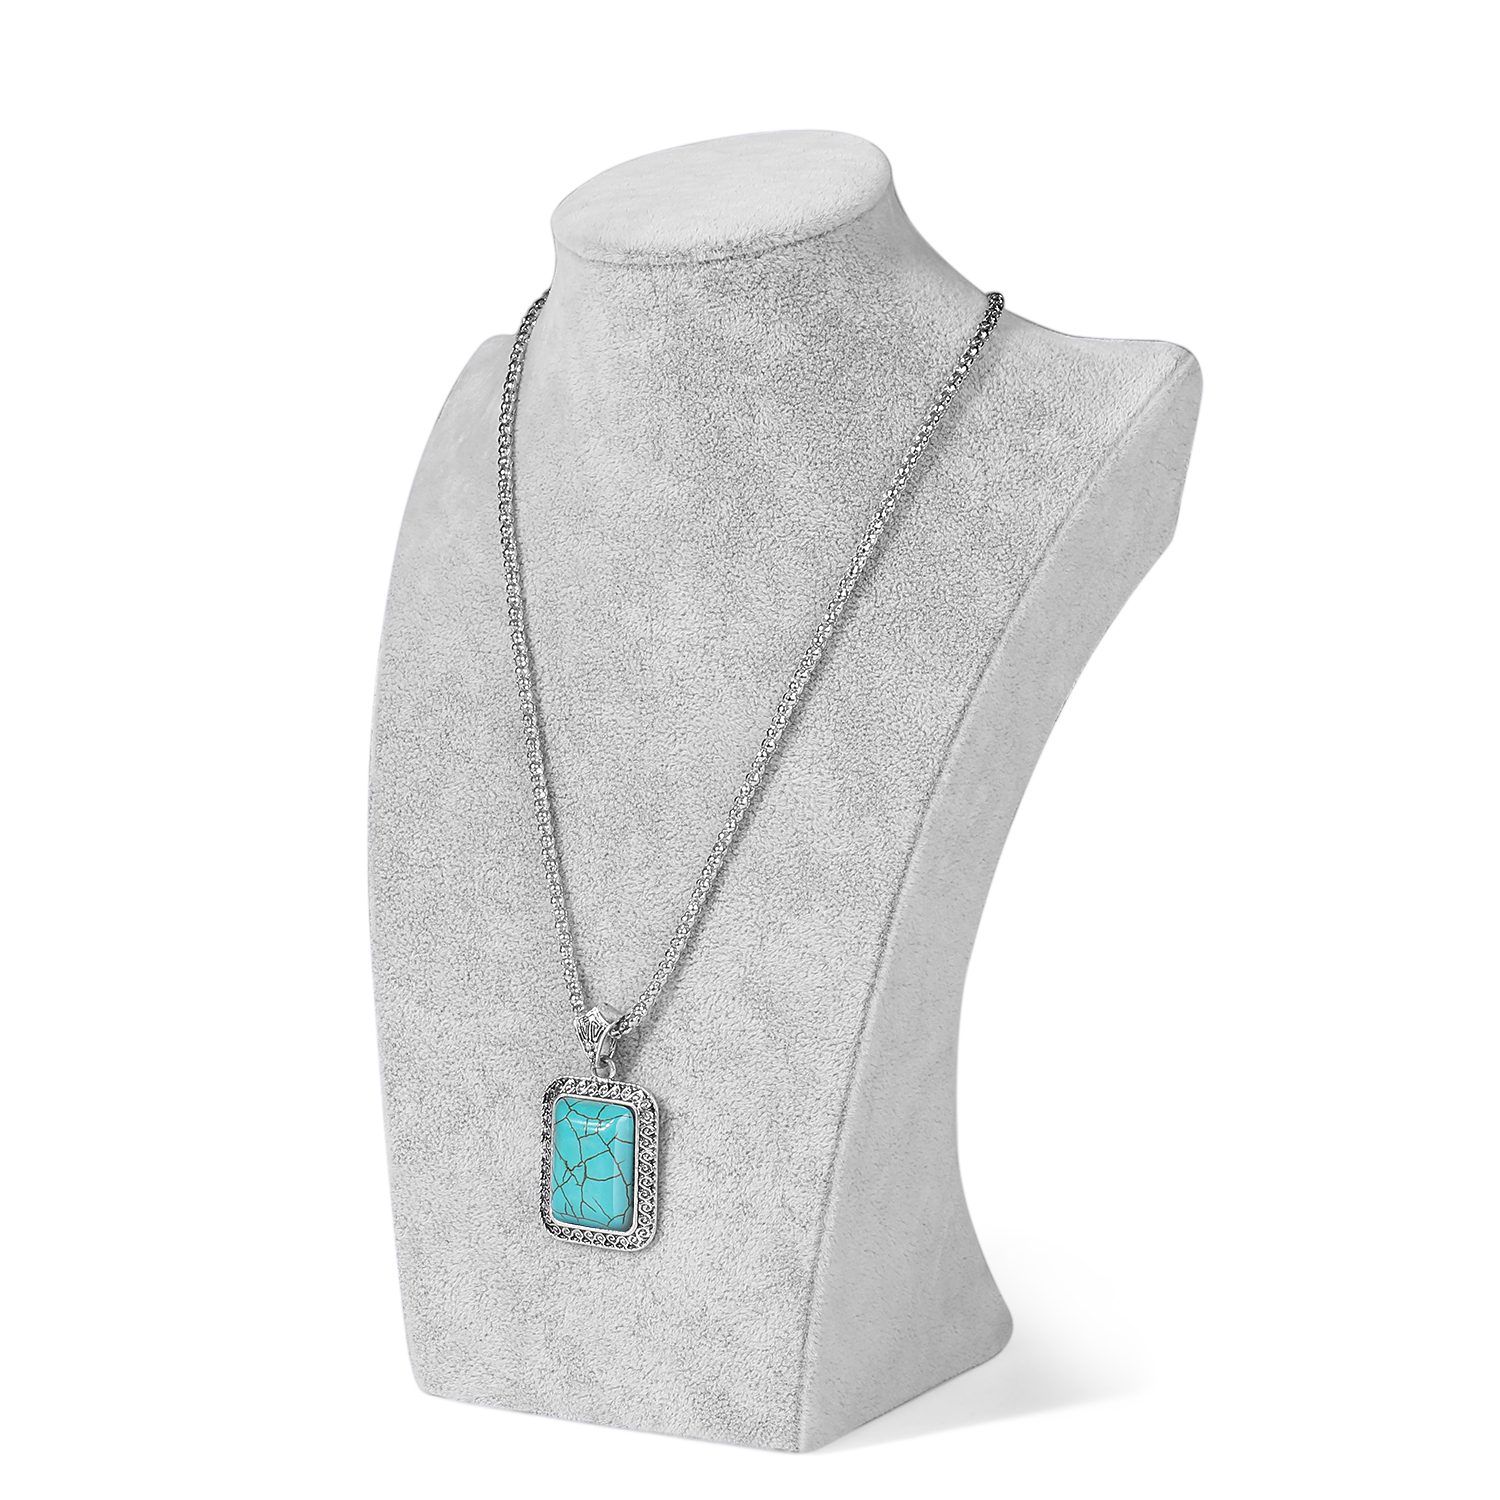 Gray Velvet Freestanding Necklace Jewelry Chain Display Bust Stand Holder